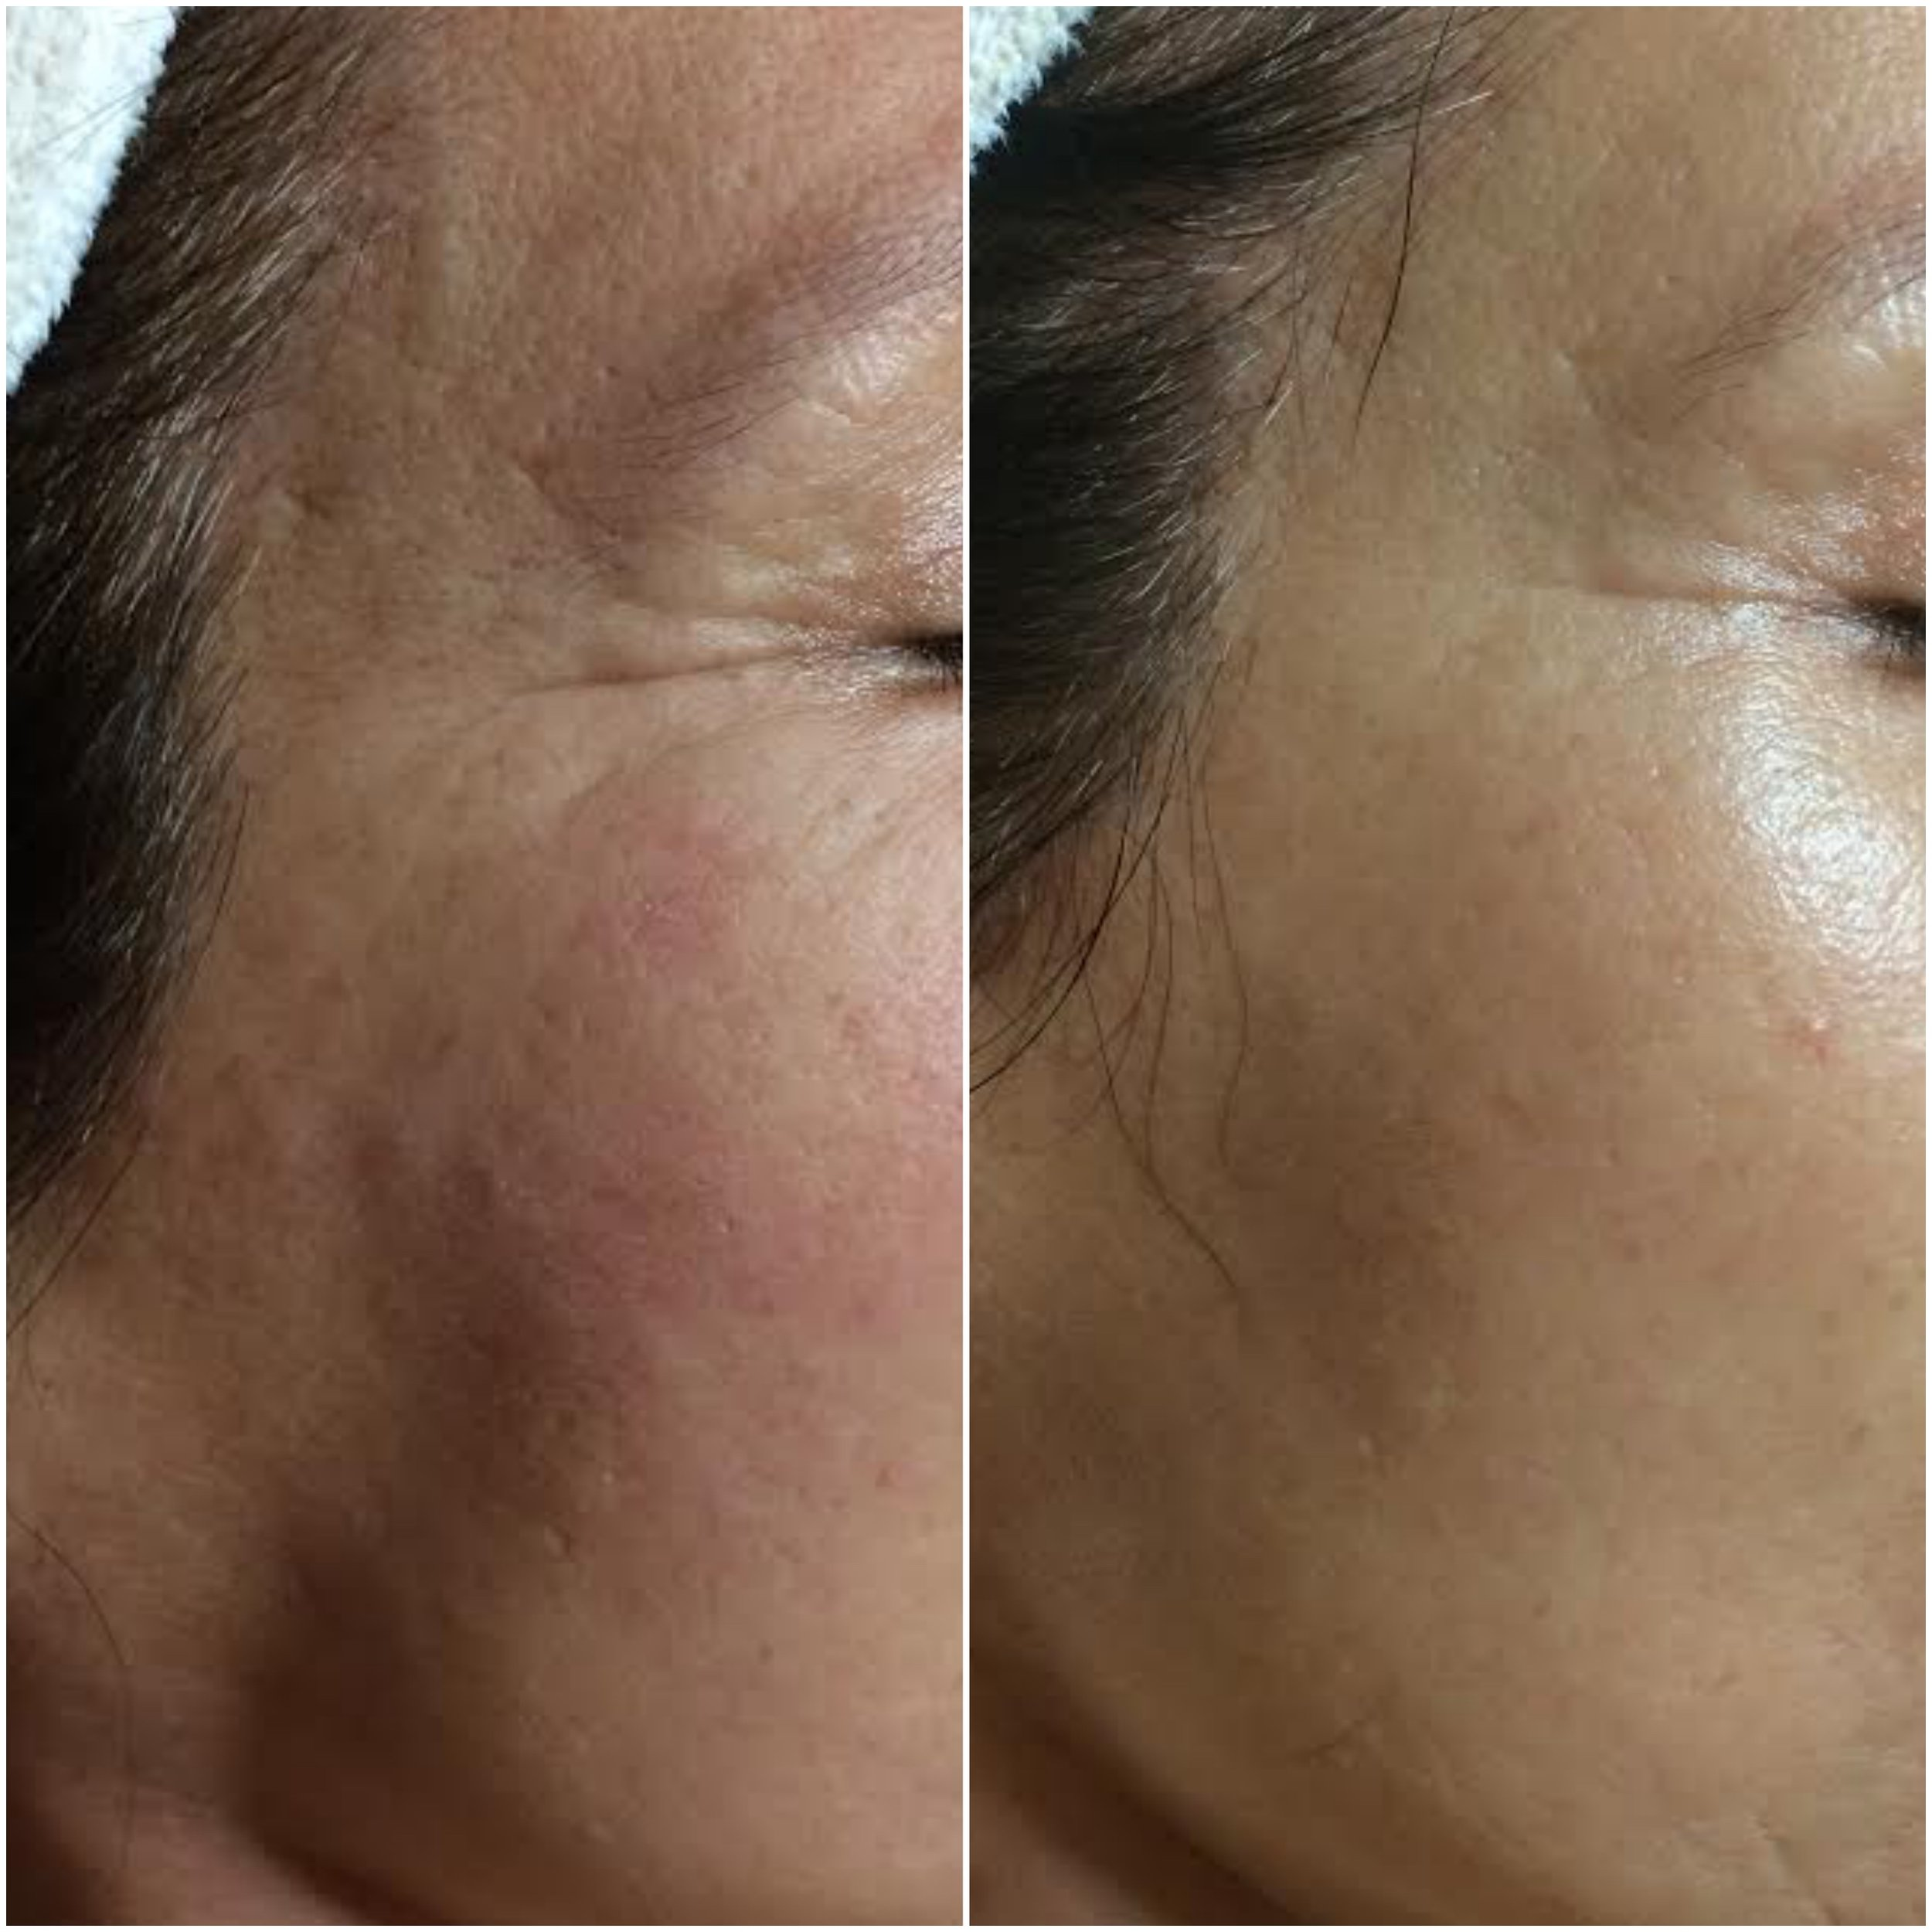 Increased collagen fills fine lines and optimizes tone and texture, using NŪR hi-tech facial series